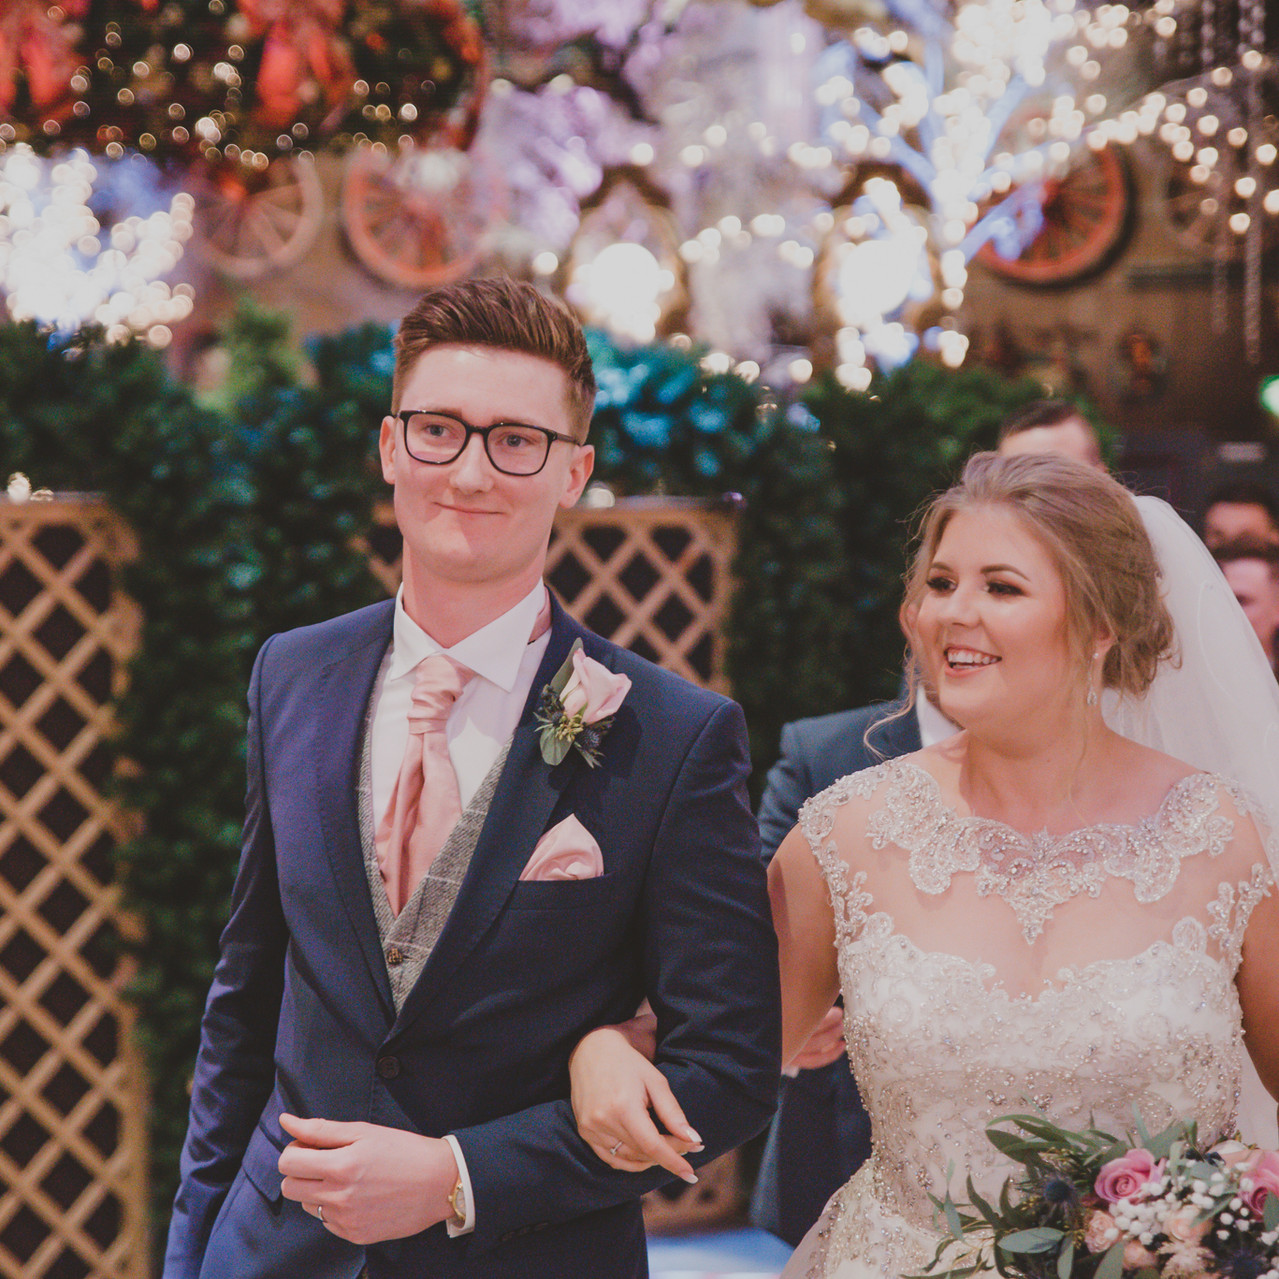 Fay Wedding - Thursford Collection at the Garden Pavilion, Norfolk. We are married